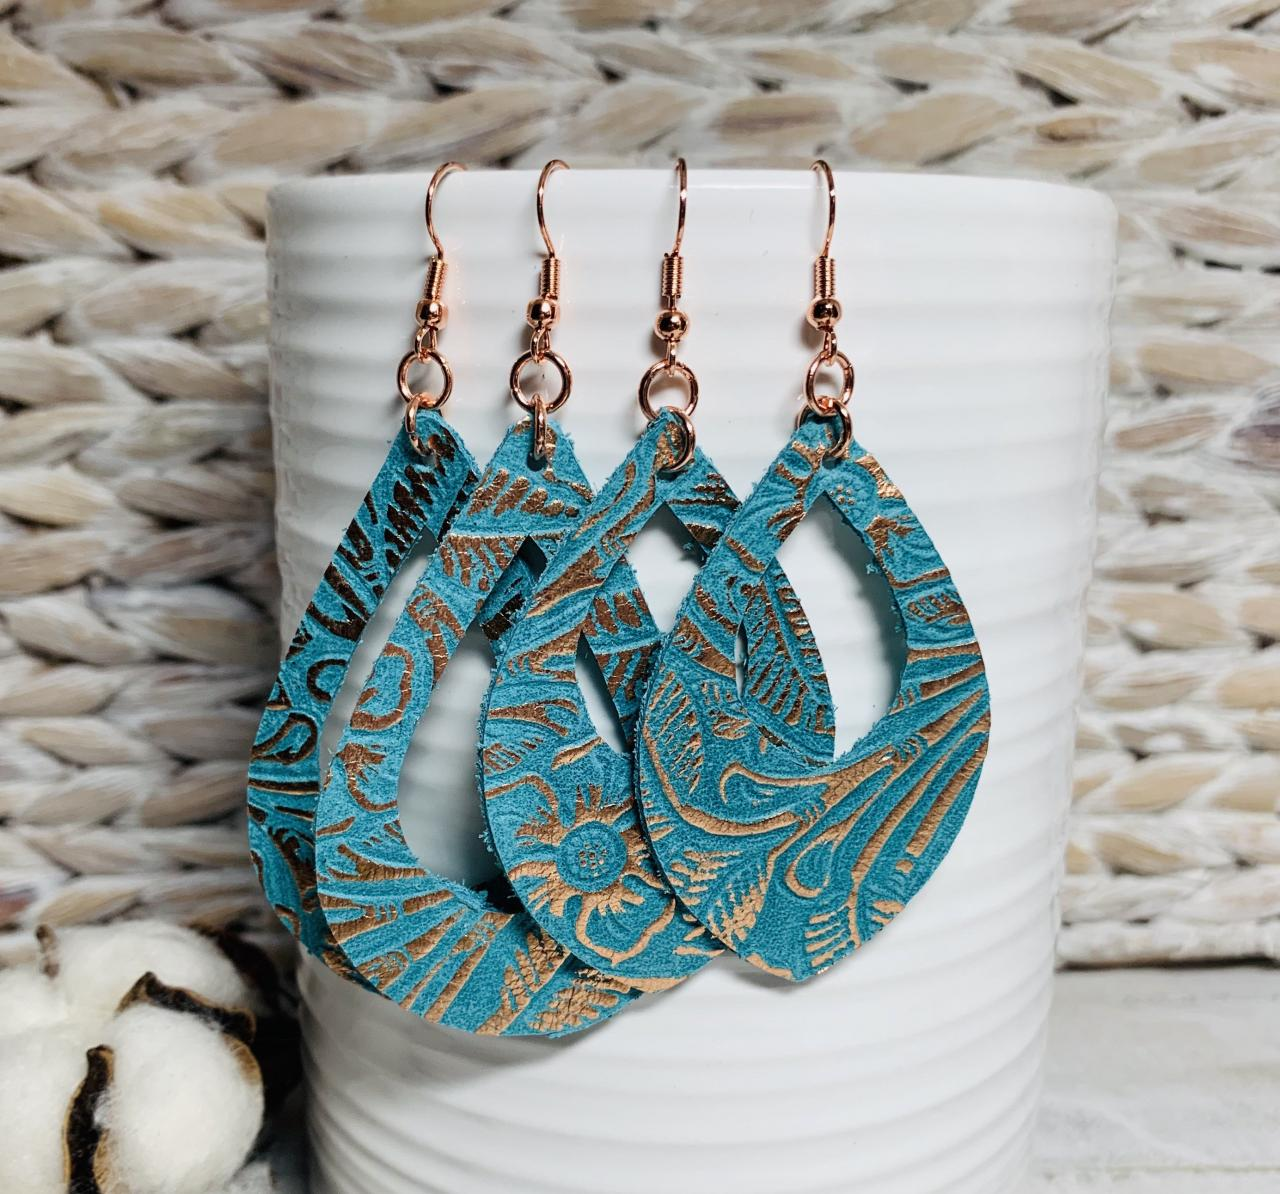 Cute Leather Earrings, Leather Earrings | Leather Earrings Teardrop | Teal Leather Earrings | Western Earrings | Embossed Leather